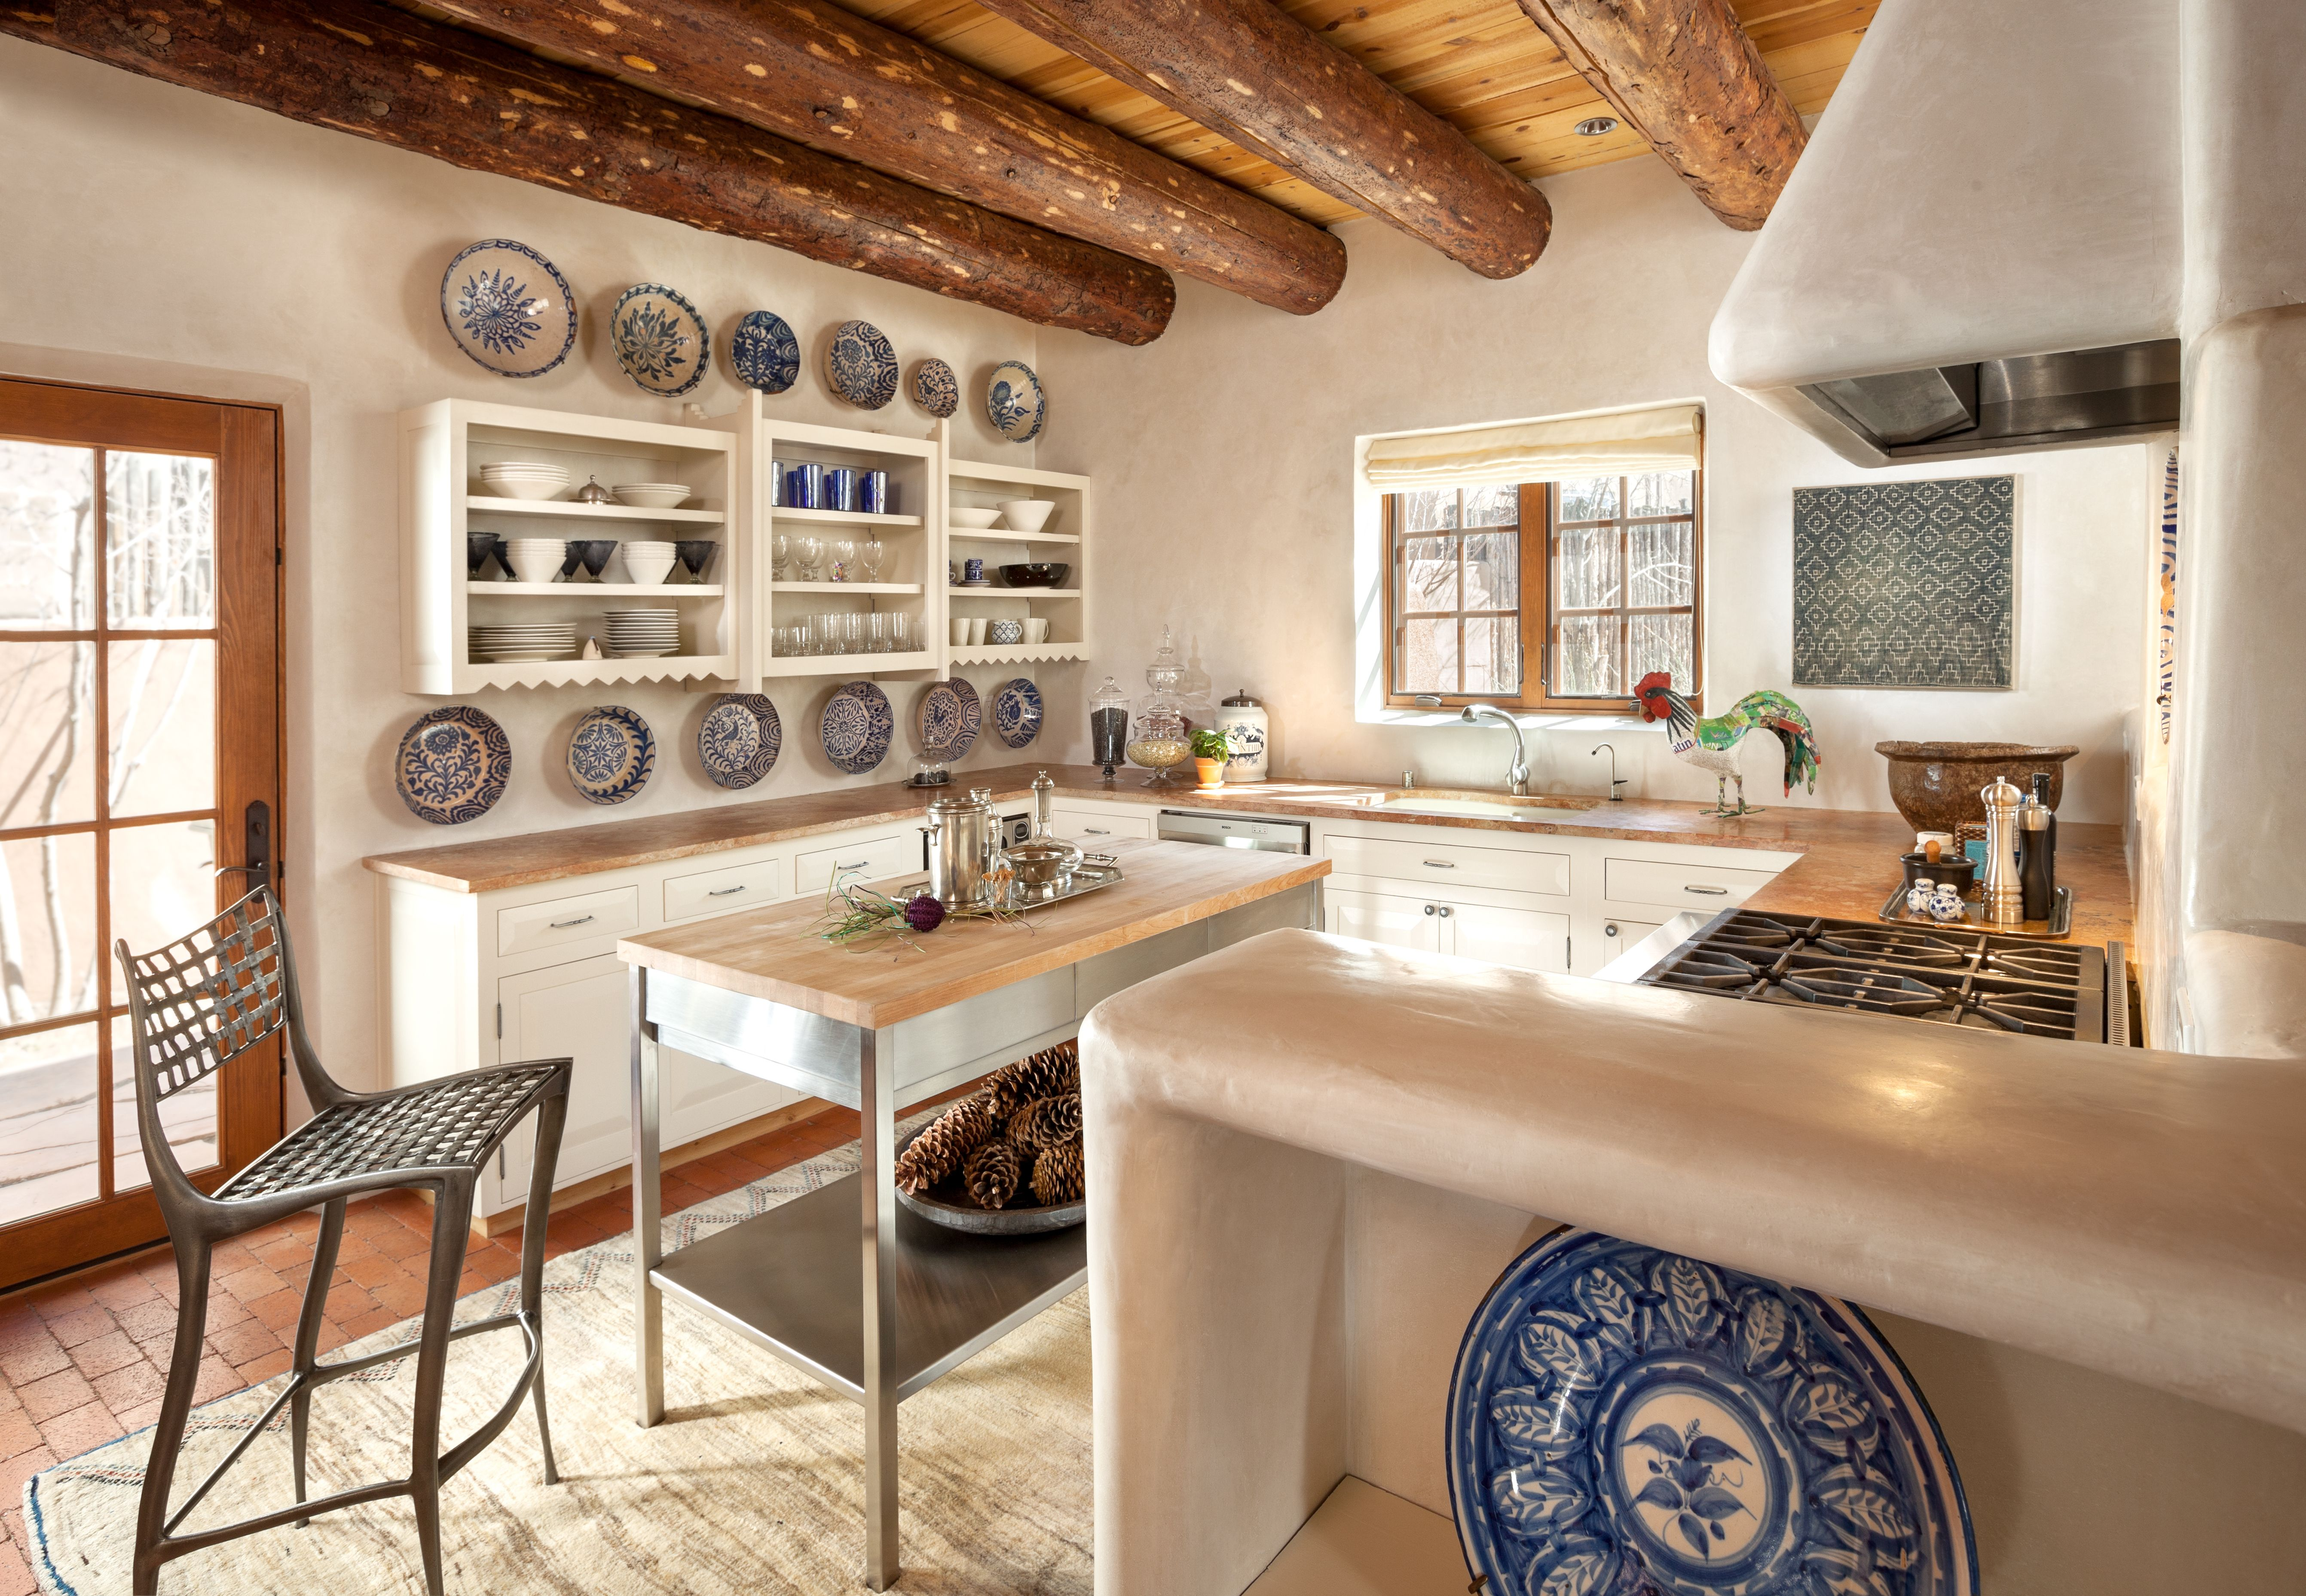 How To Open Up A Small Congested Space Interior Design Kitchen Kitchen Interior Southwest Kitchen